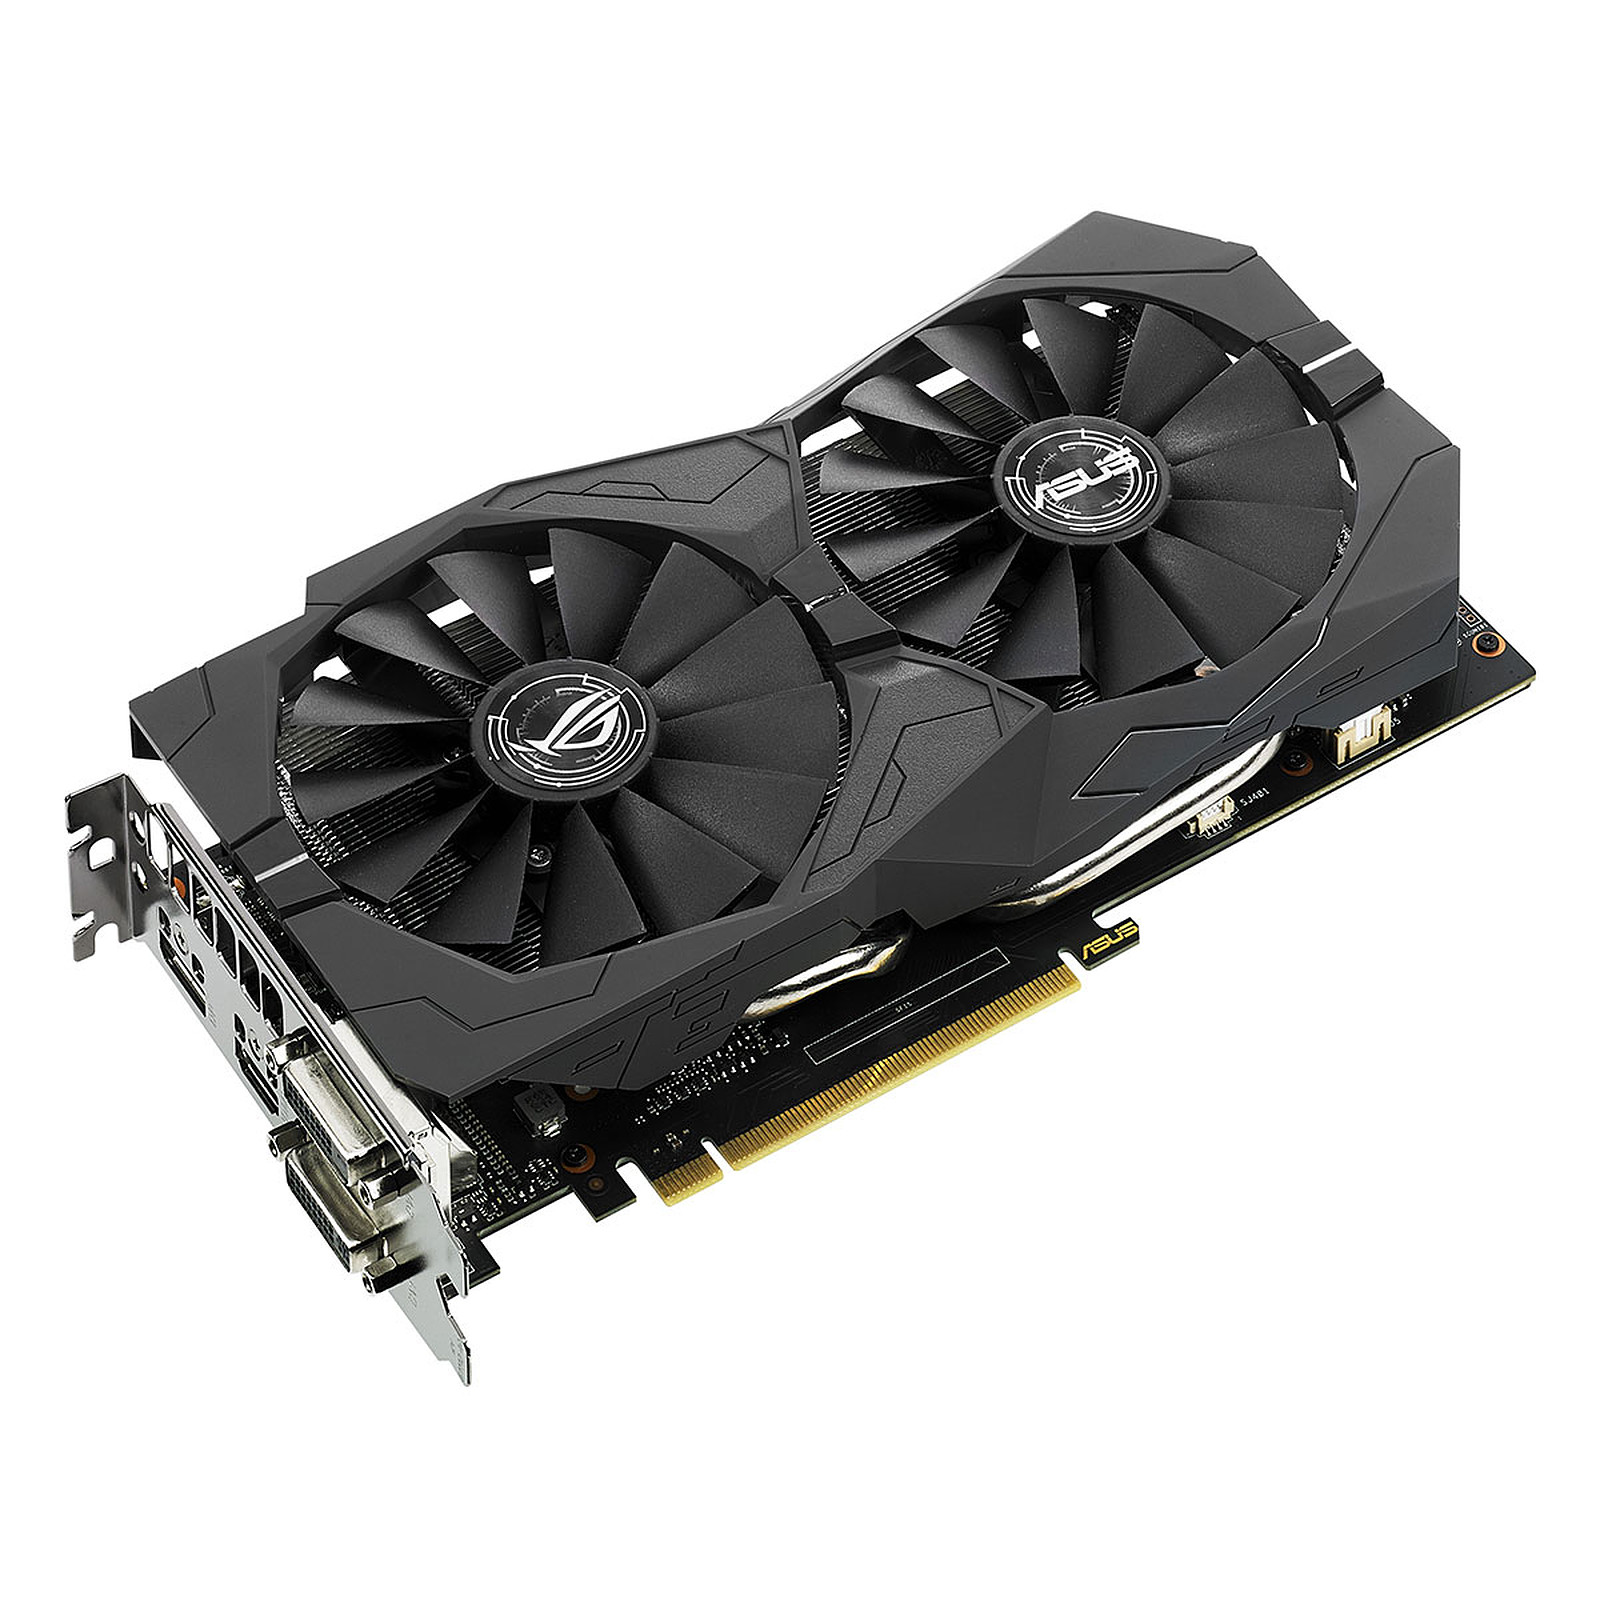 ASUS GeForce GTX 1050 Ti - ROG STRIX-GTX1050TI-4G-GAMING